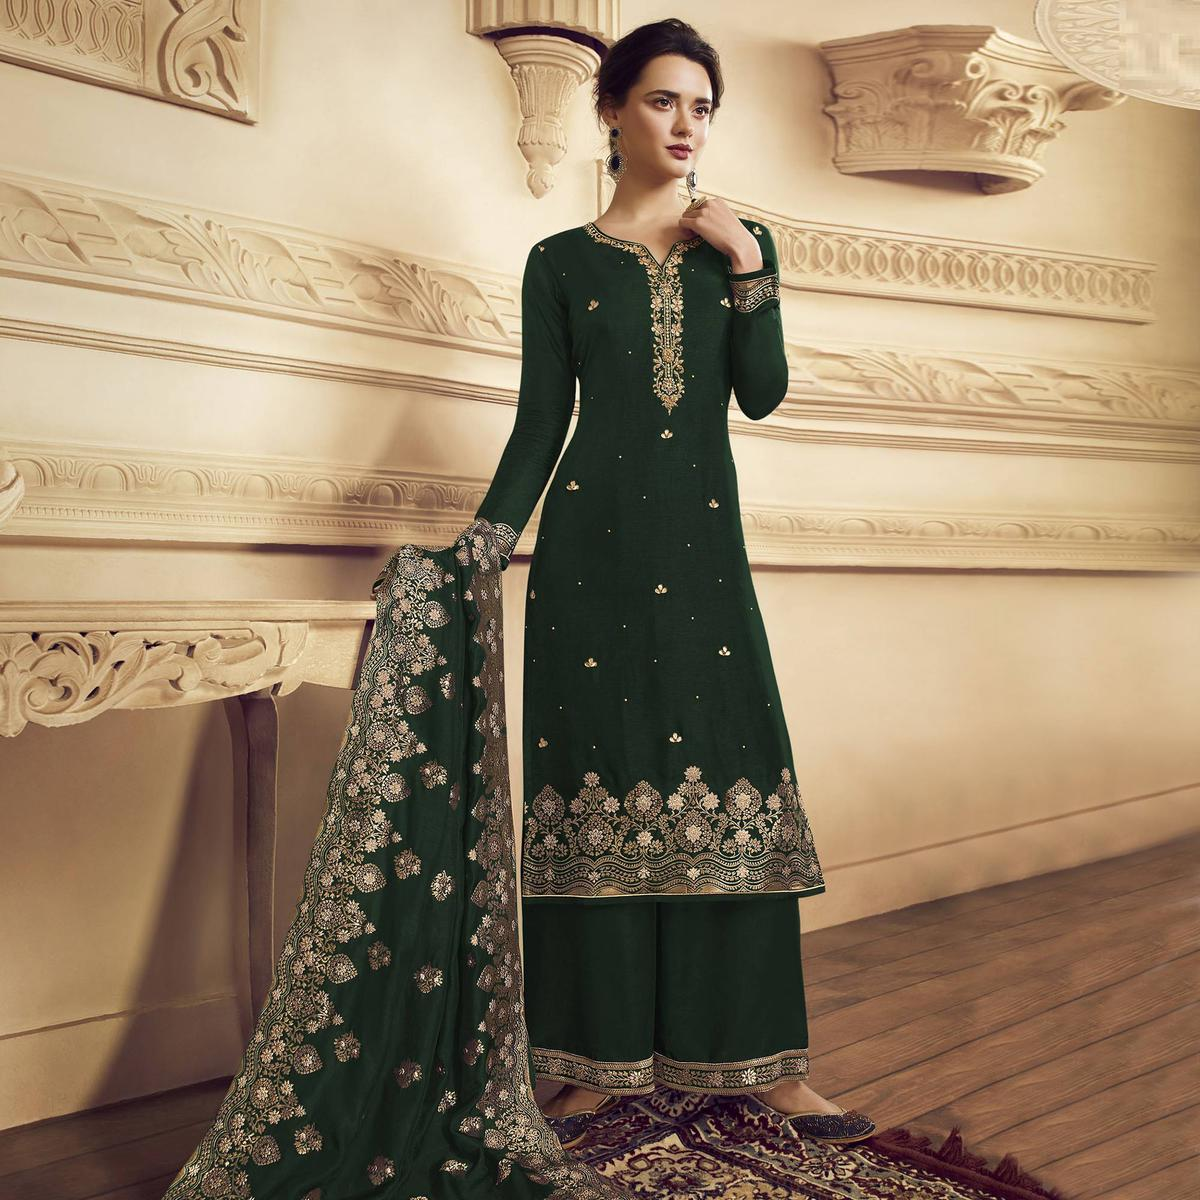 Ravishing Green Colored Partywear Embroidered Crepe Straight Suit